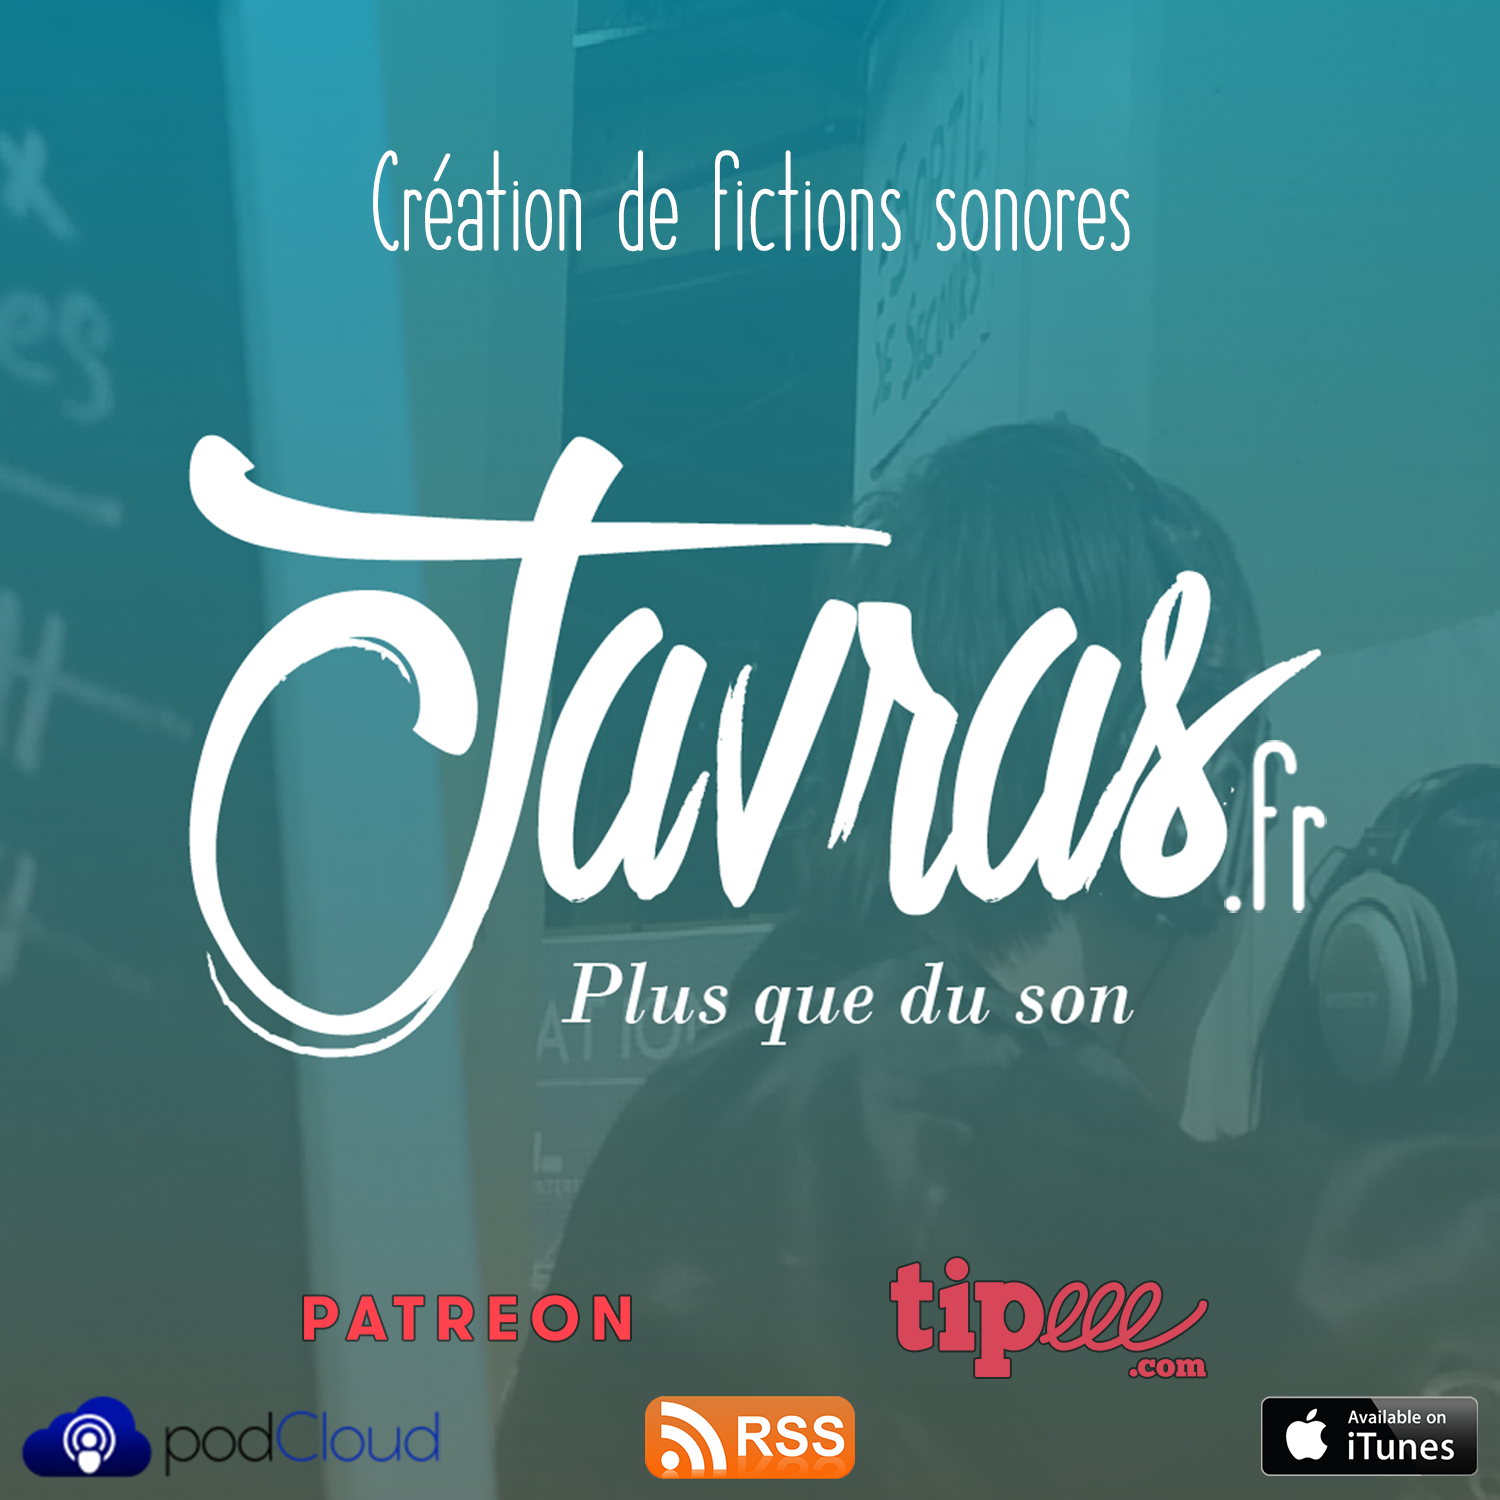 Javras, plus que du son... (Sagas MP3 / Podcasts / LIVE)